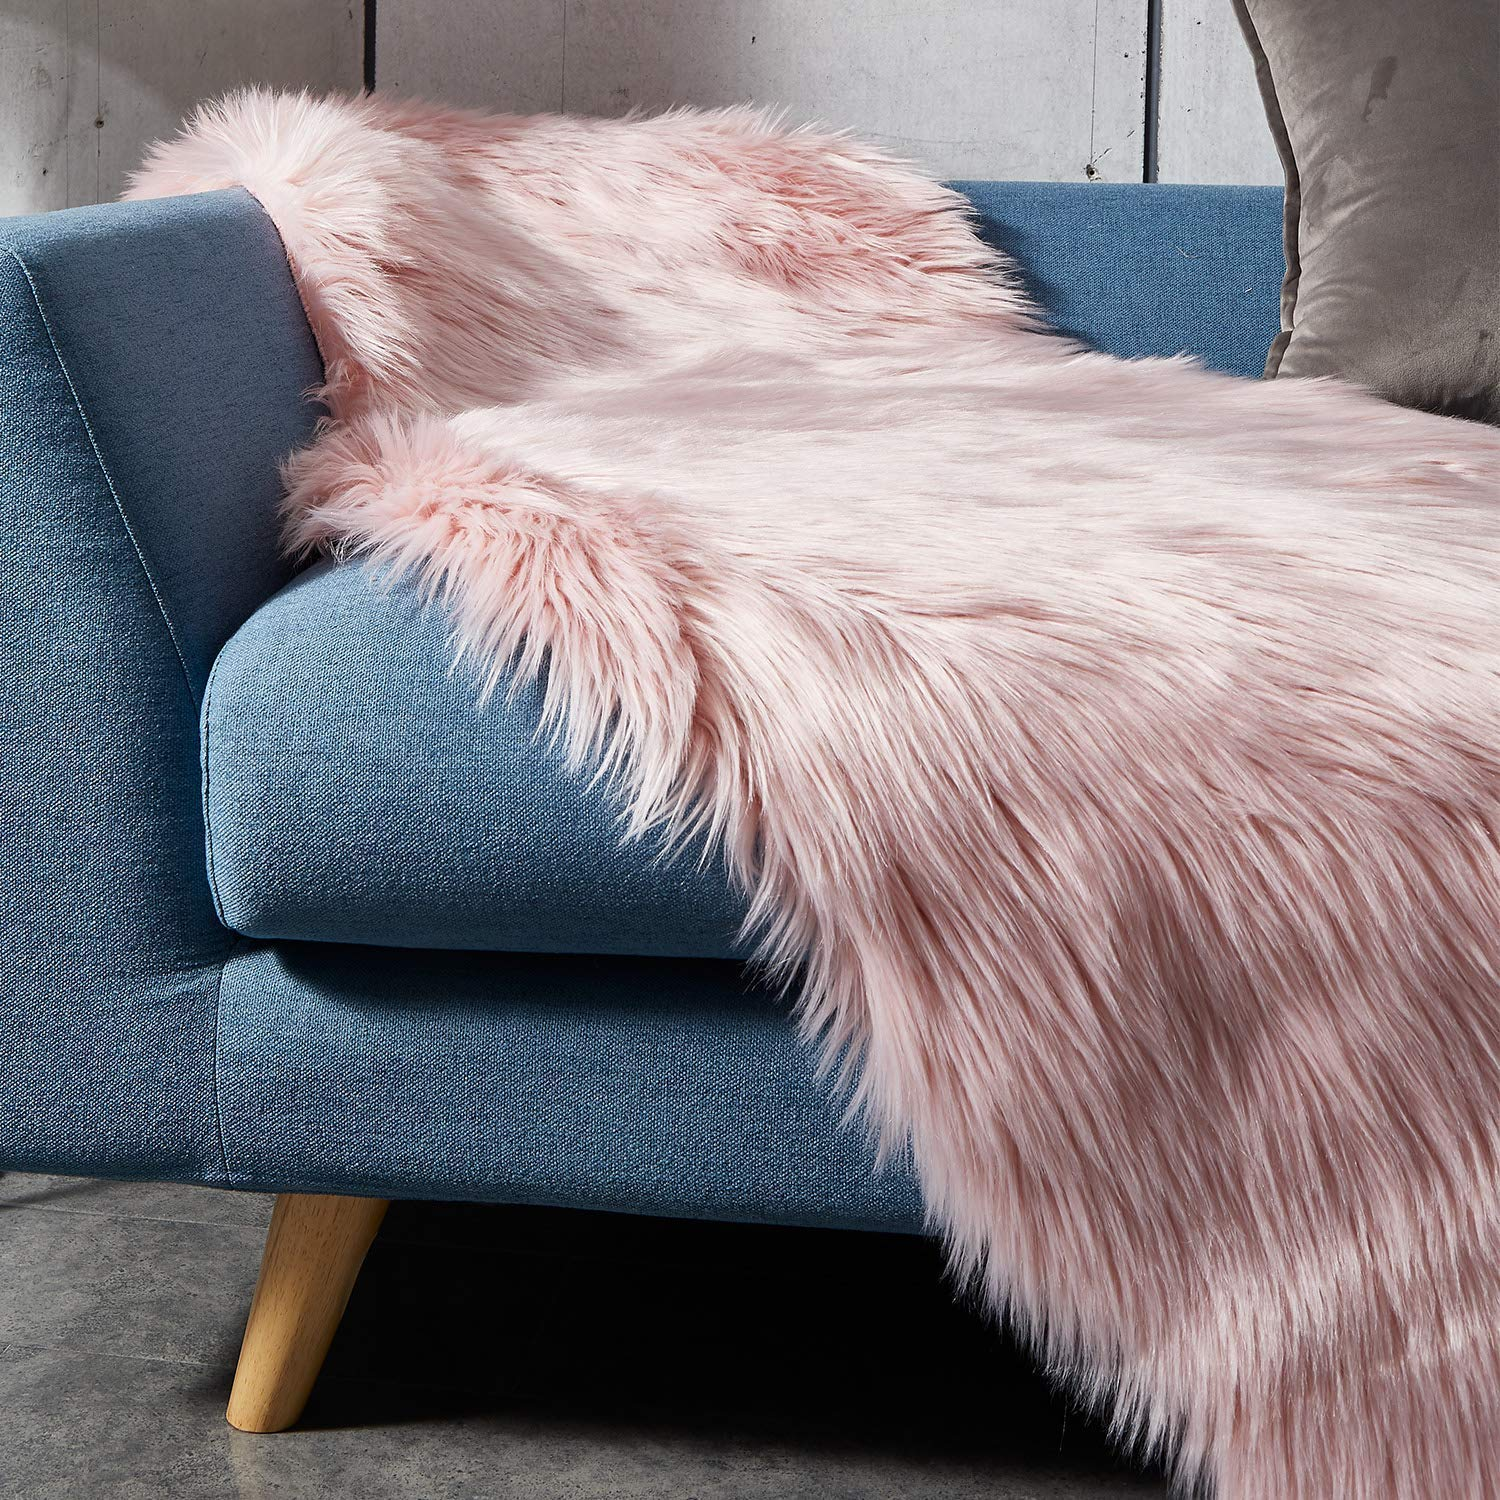 Stools And Sofa Faux Fur Rug Furry Carpet Or Throw For Chairs Grey 50x80cm Zczuox Faux Sheepskin Fluffy Rug For The Bedroom Living Room Or Nursery Area Rugs